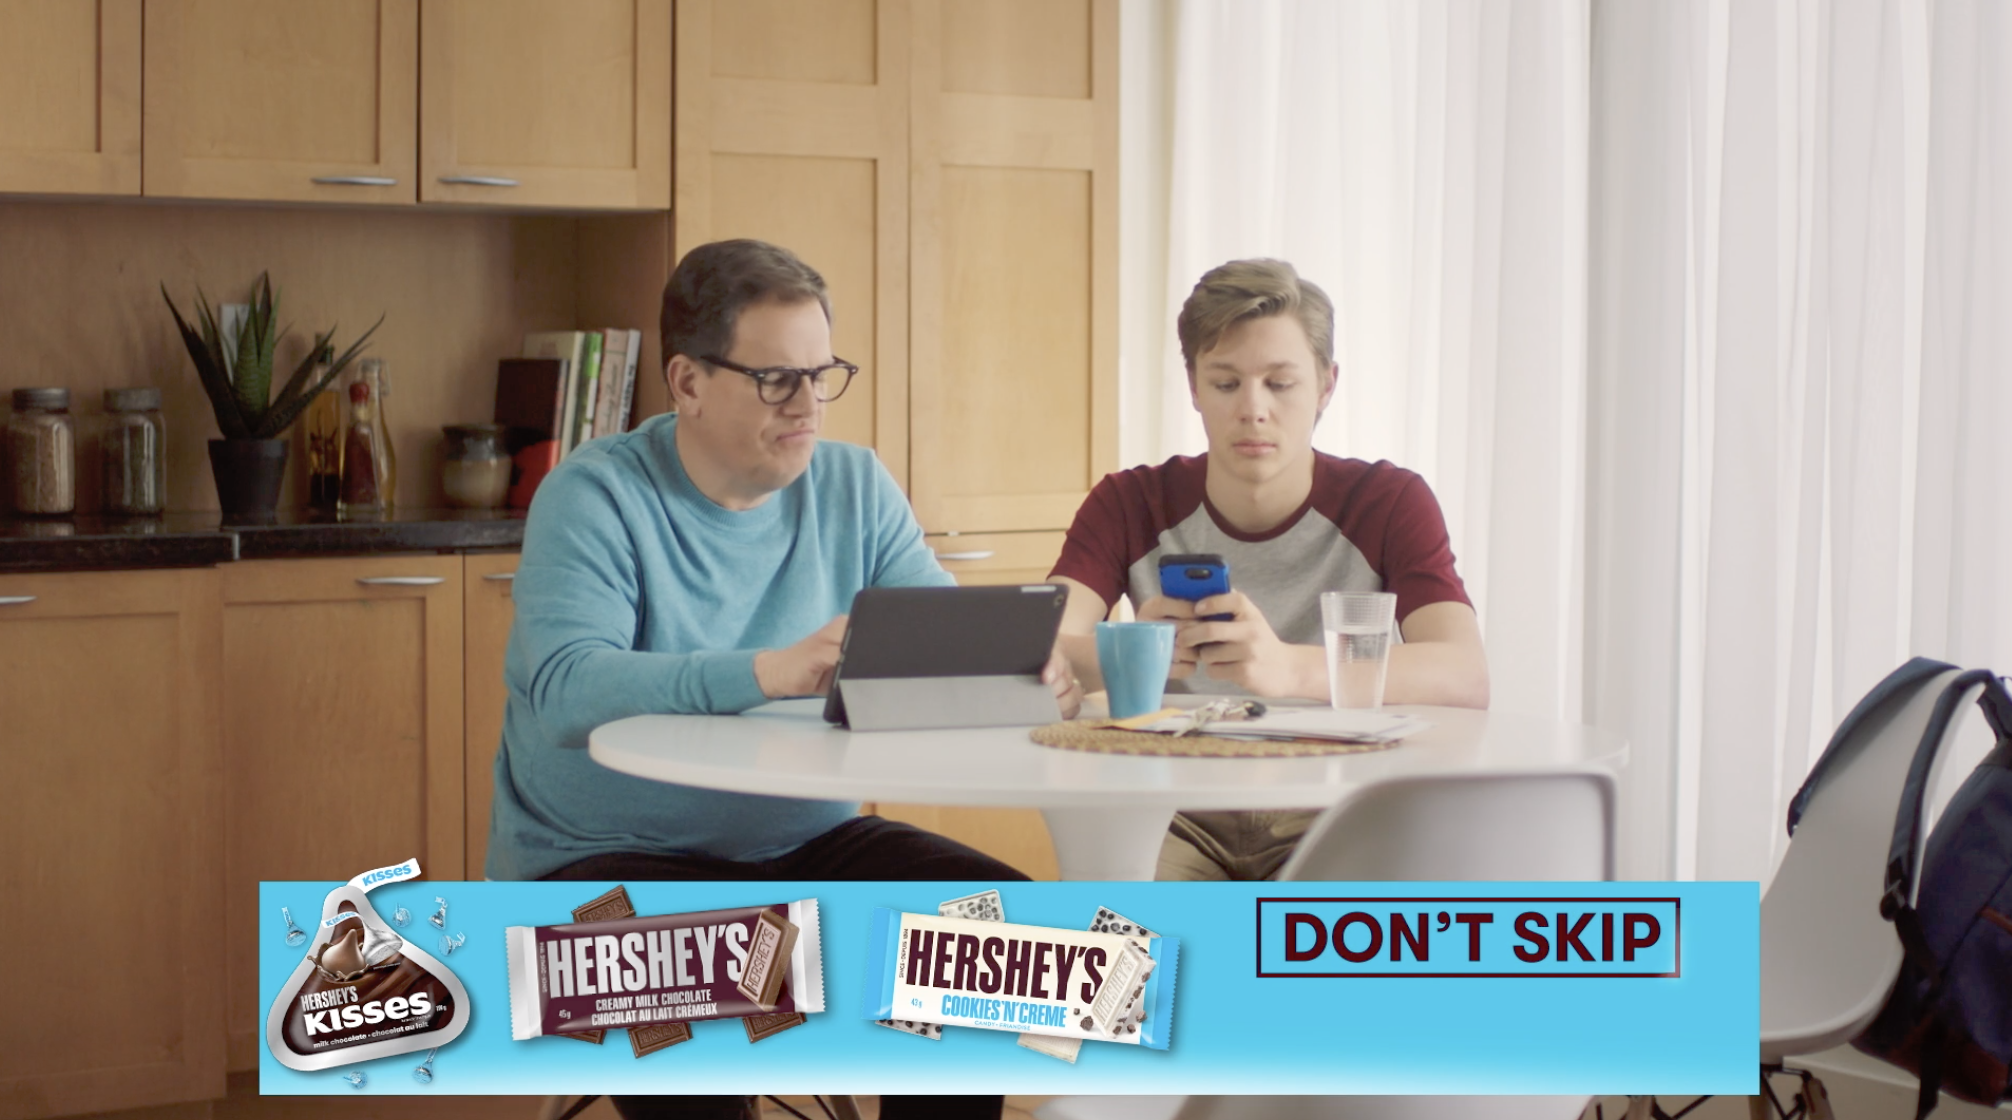 Hershey's chocolate broadcast campaign directed by Amit Metha // Fancy Content production company